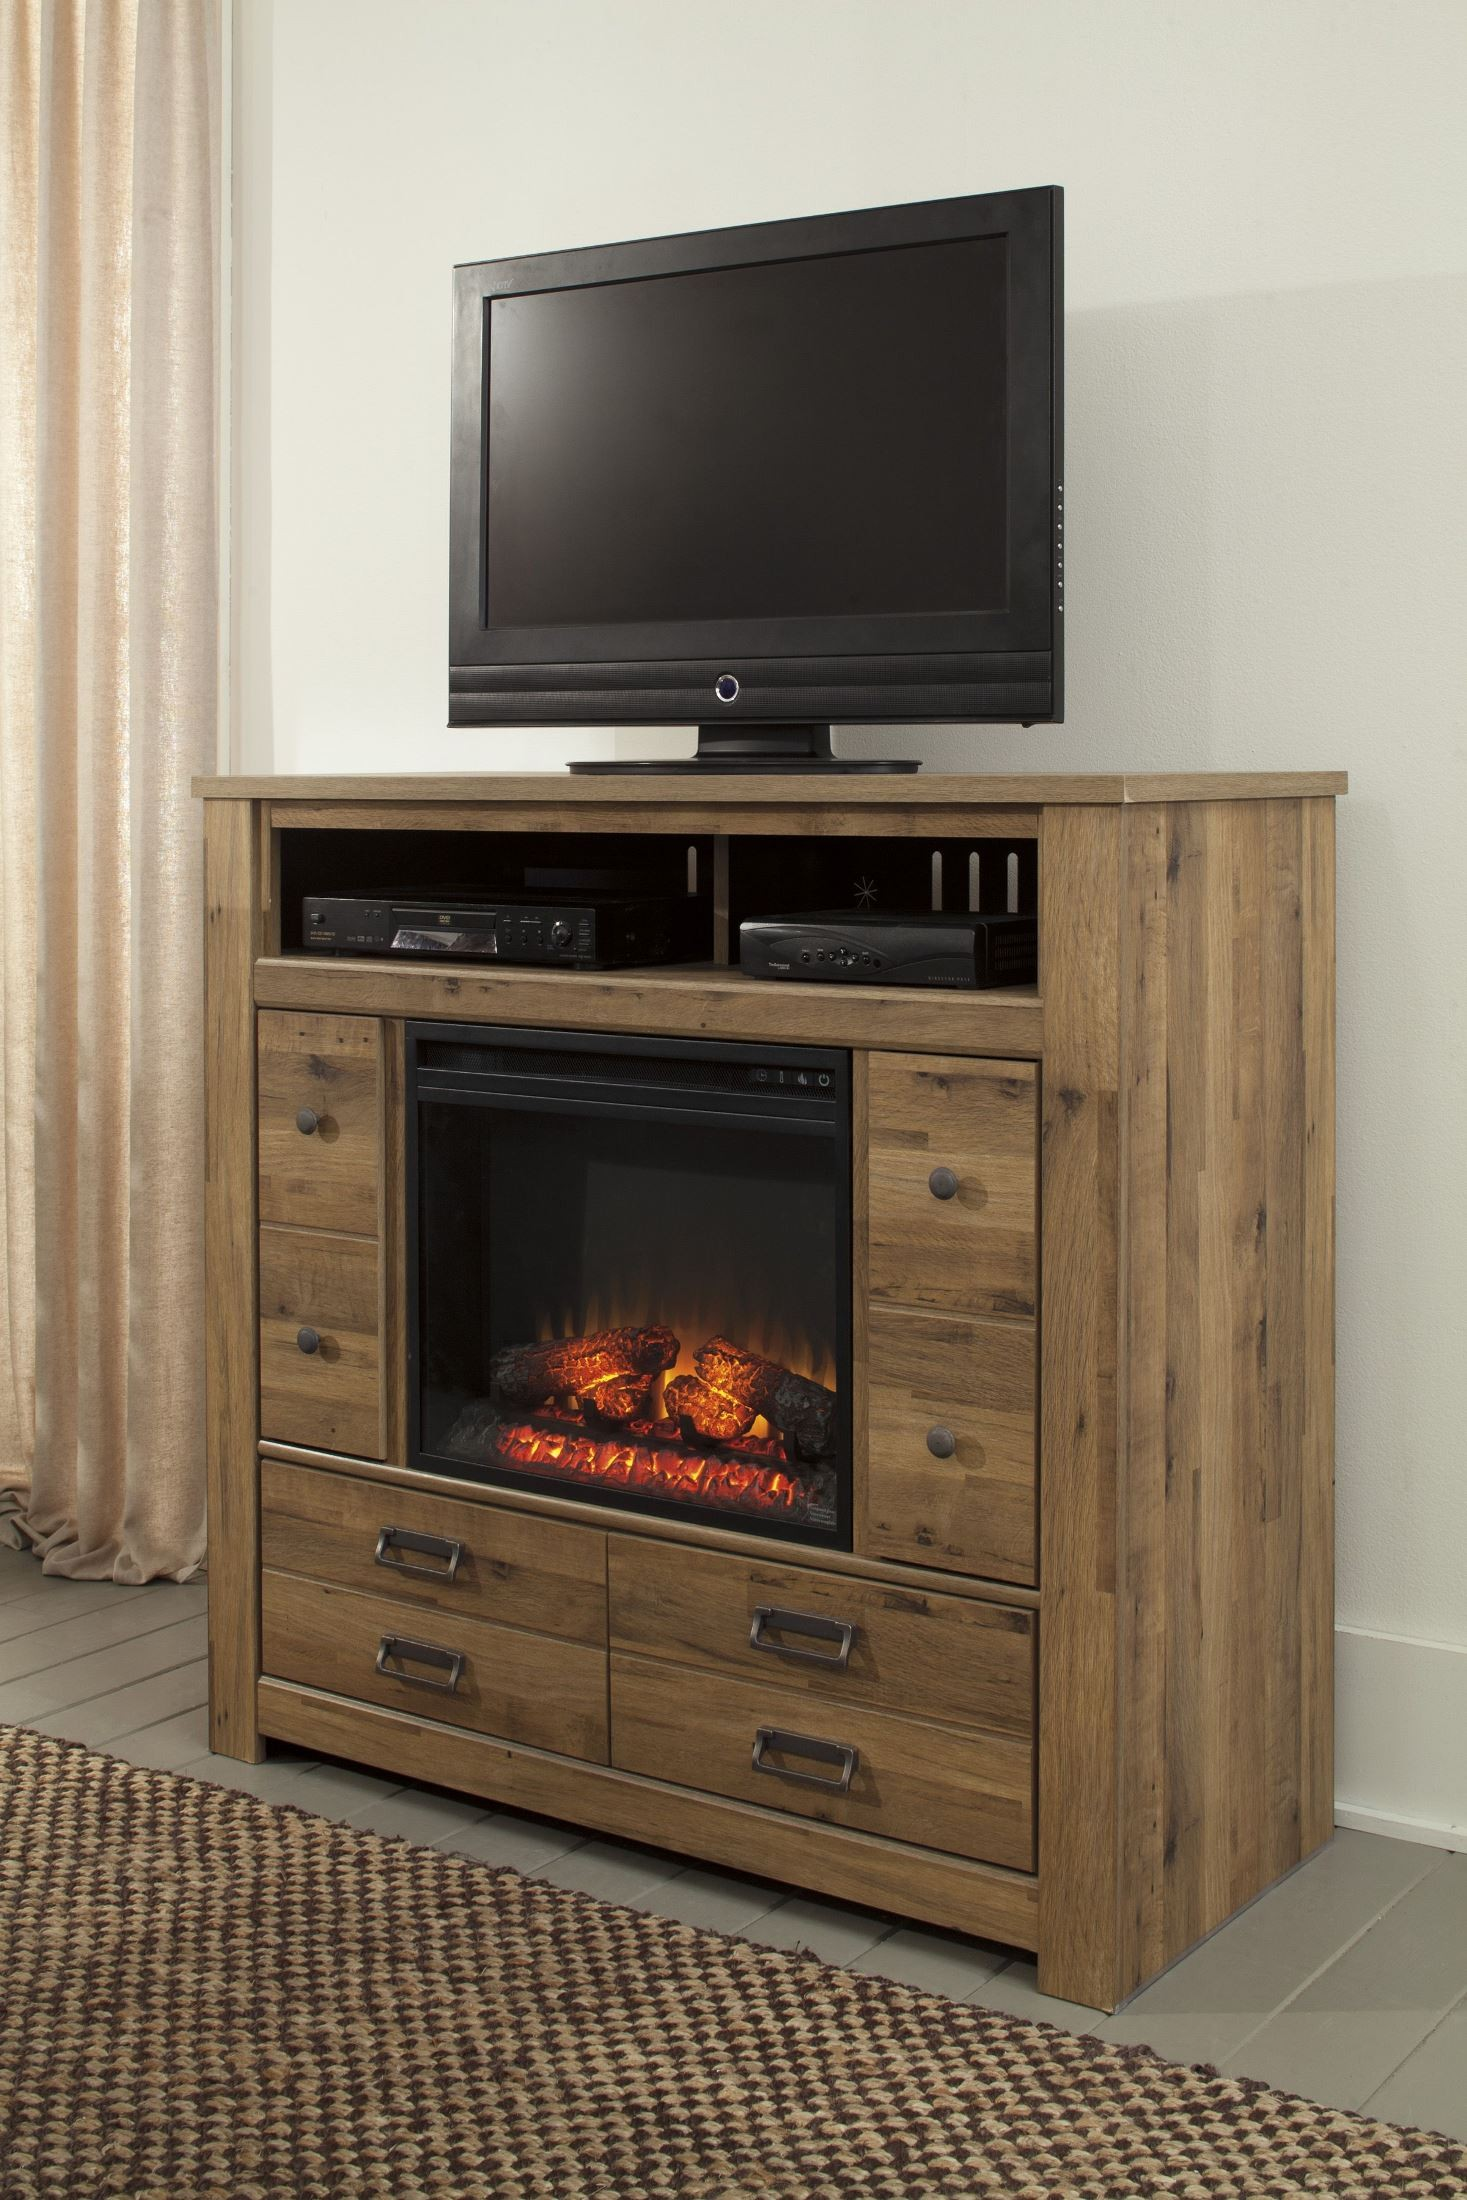 Cinrey Media Chest With Glass Stone Fireplace Insert From Ashley B369 49 W100 02 Coleman